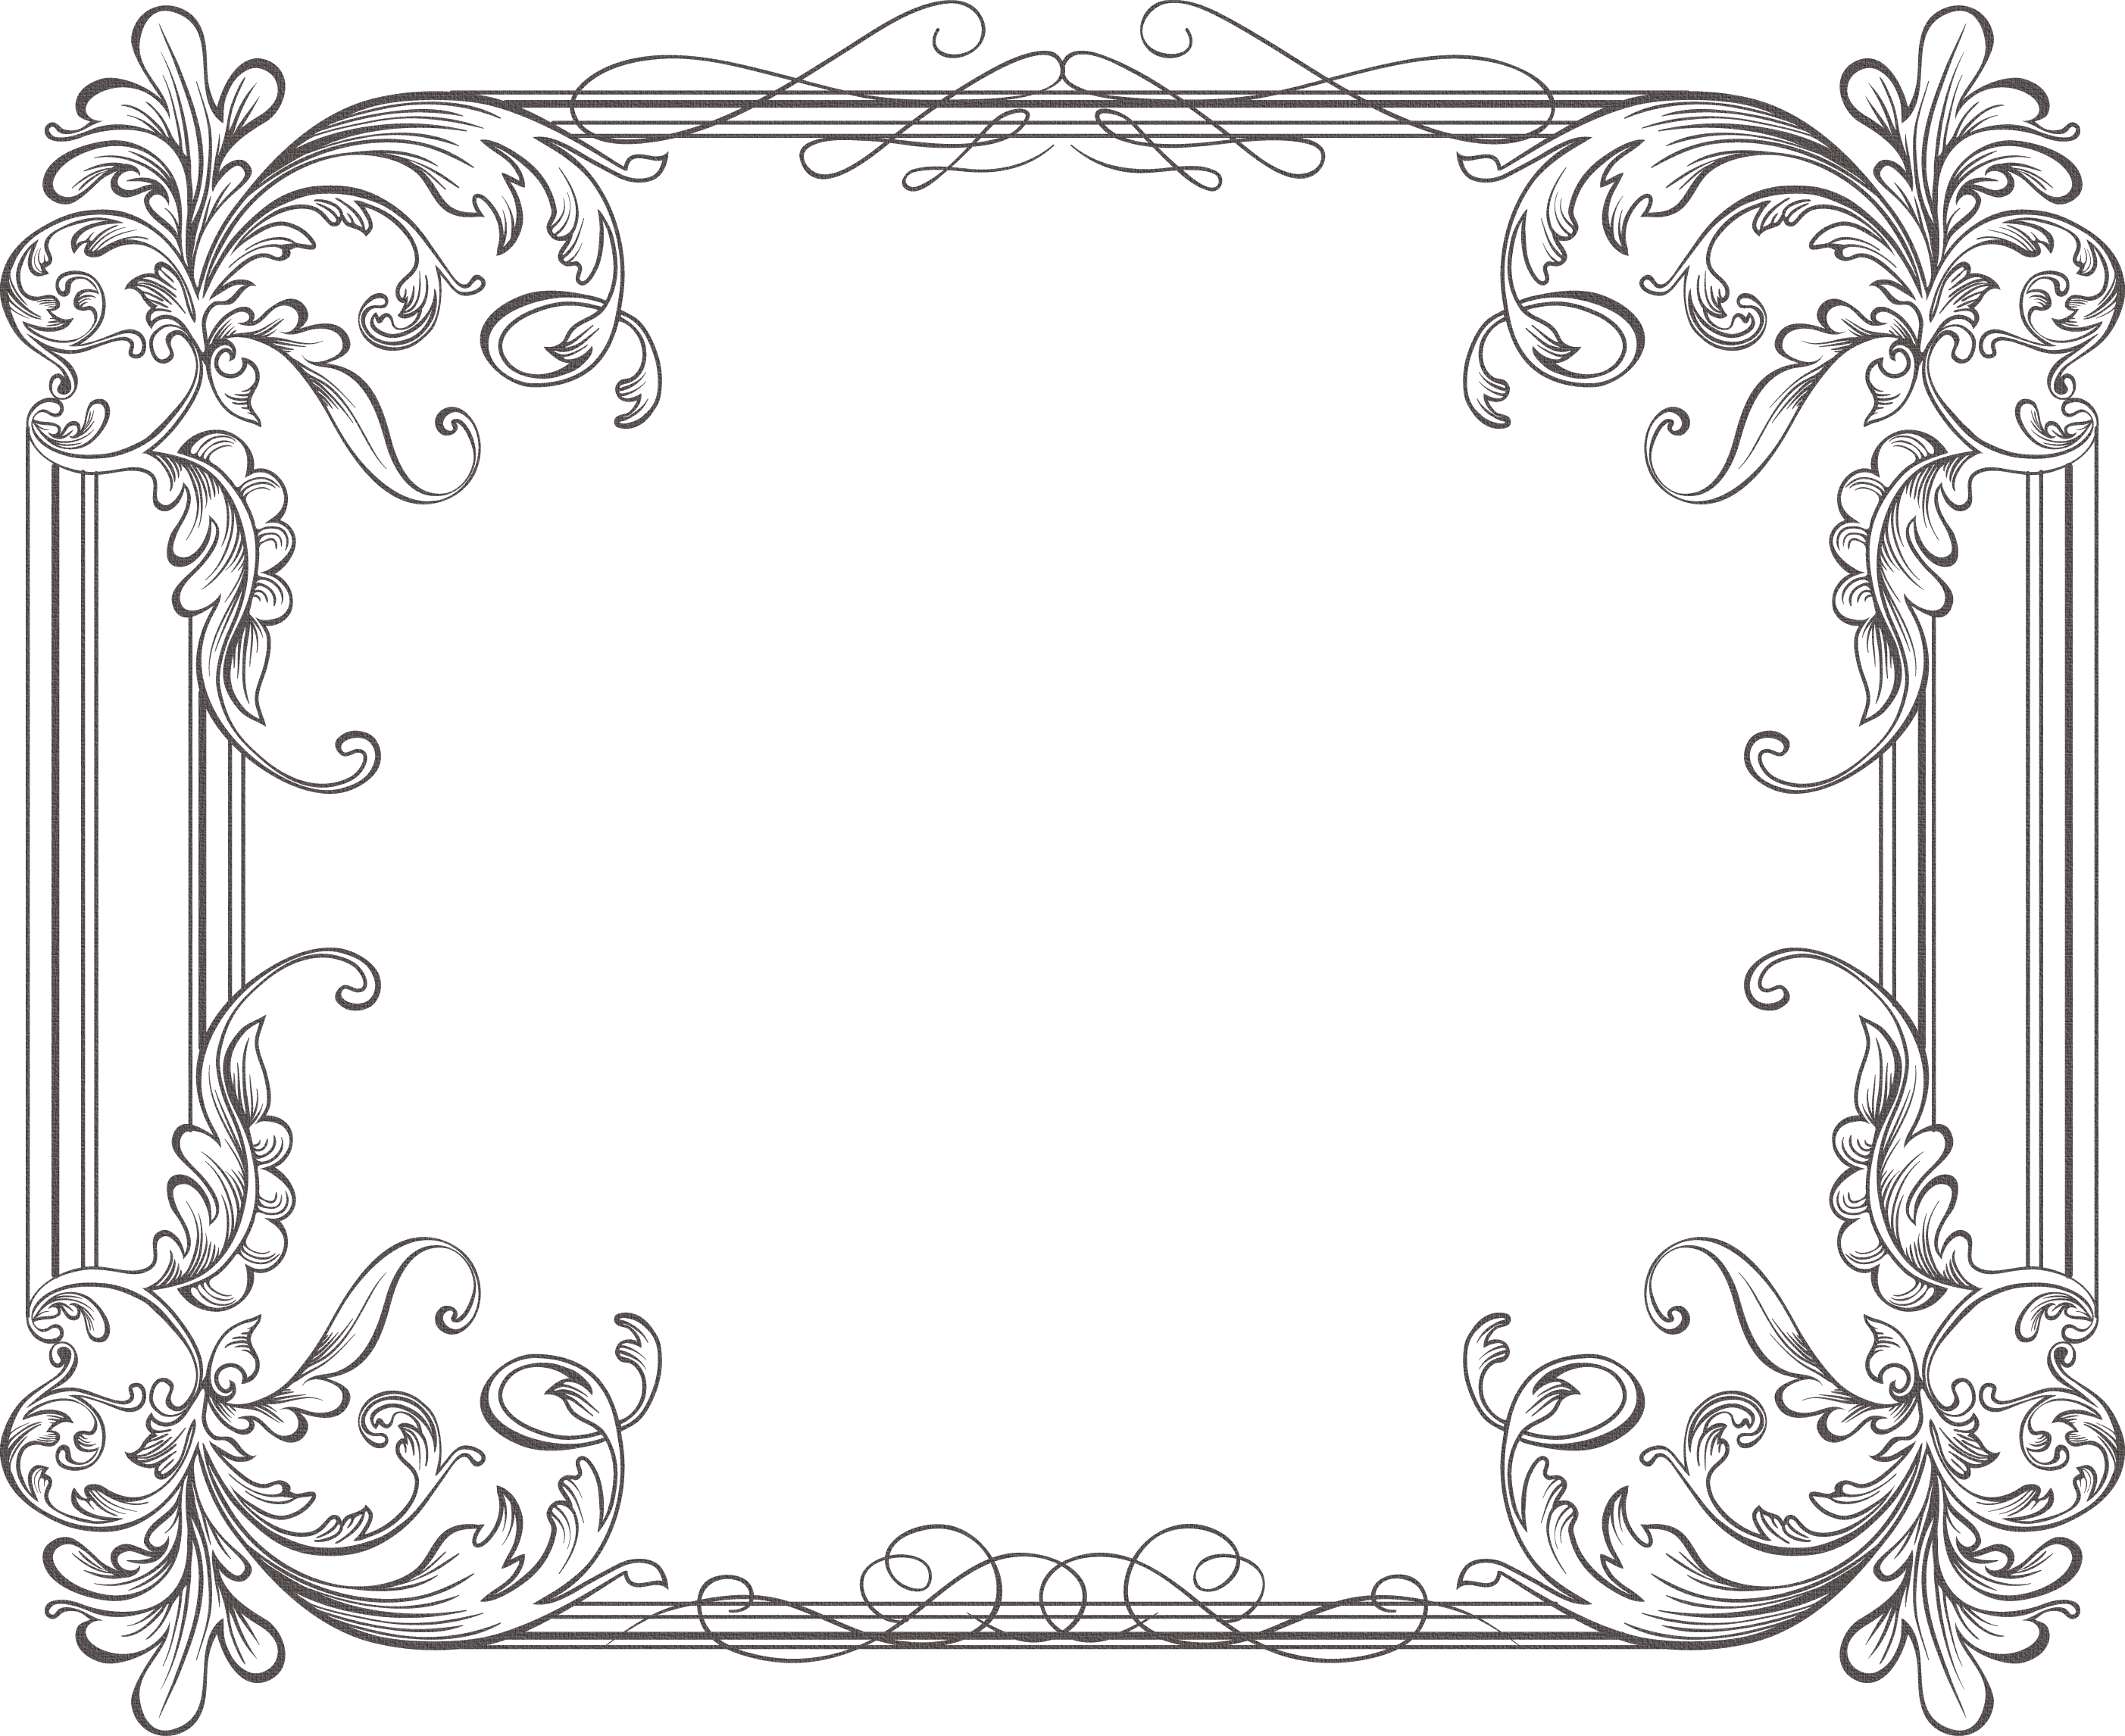 Scrollwork money corner clipart vector free download Pin by Mary Barnes-Ekobena on Assorted Frames for Artwork/Journaling ... vector free download